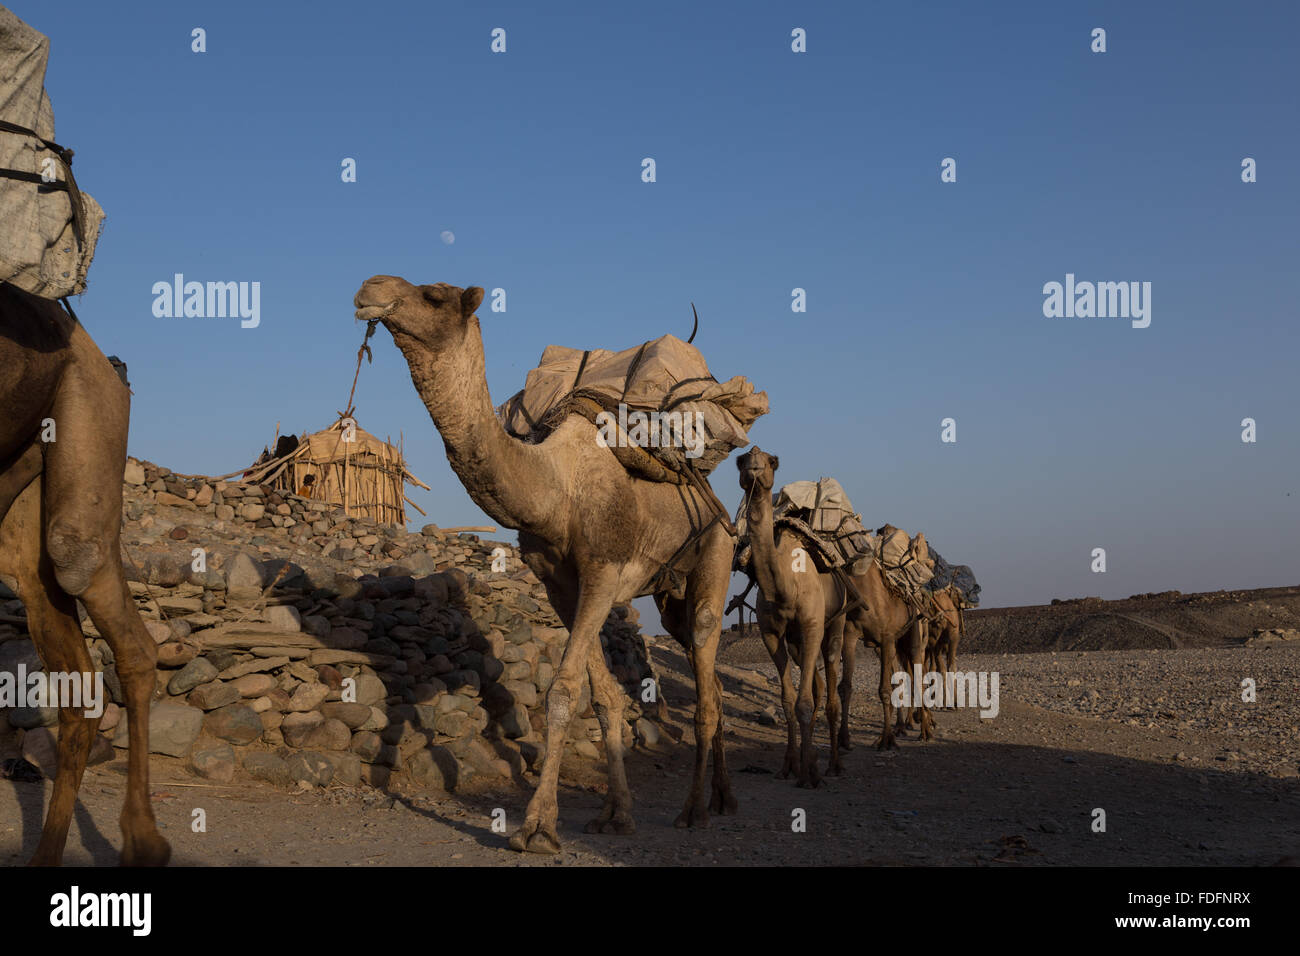 Camels carrying hand-cut tablets of salt arrive in Hamedila from the nearby salt pans as they have done for hundreds Stock Photo